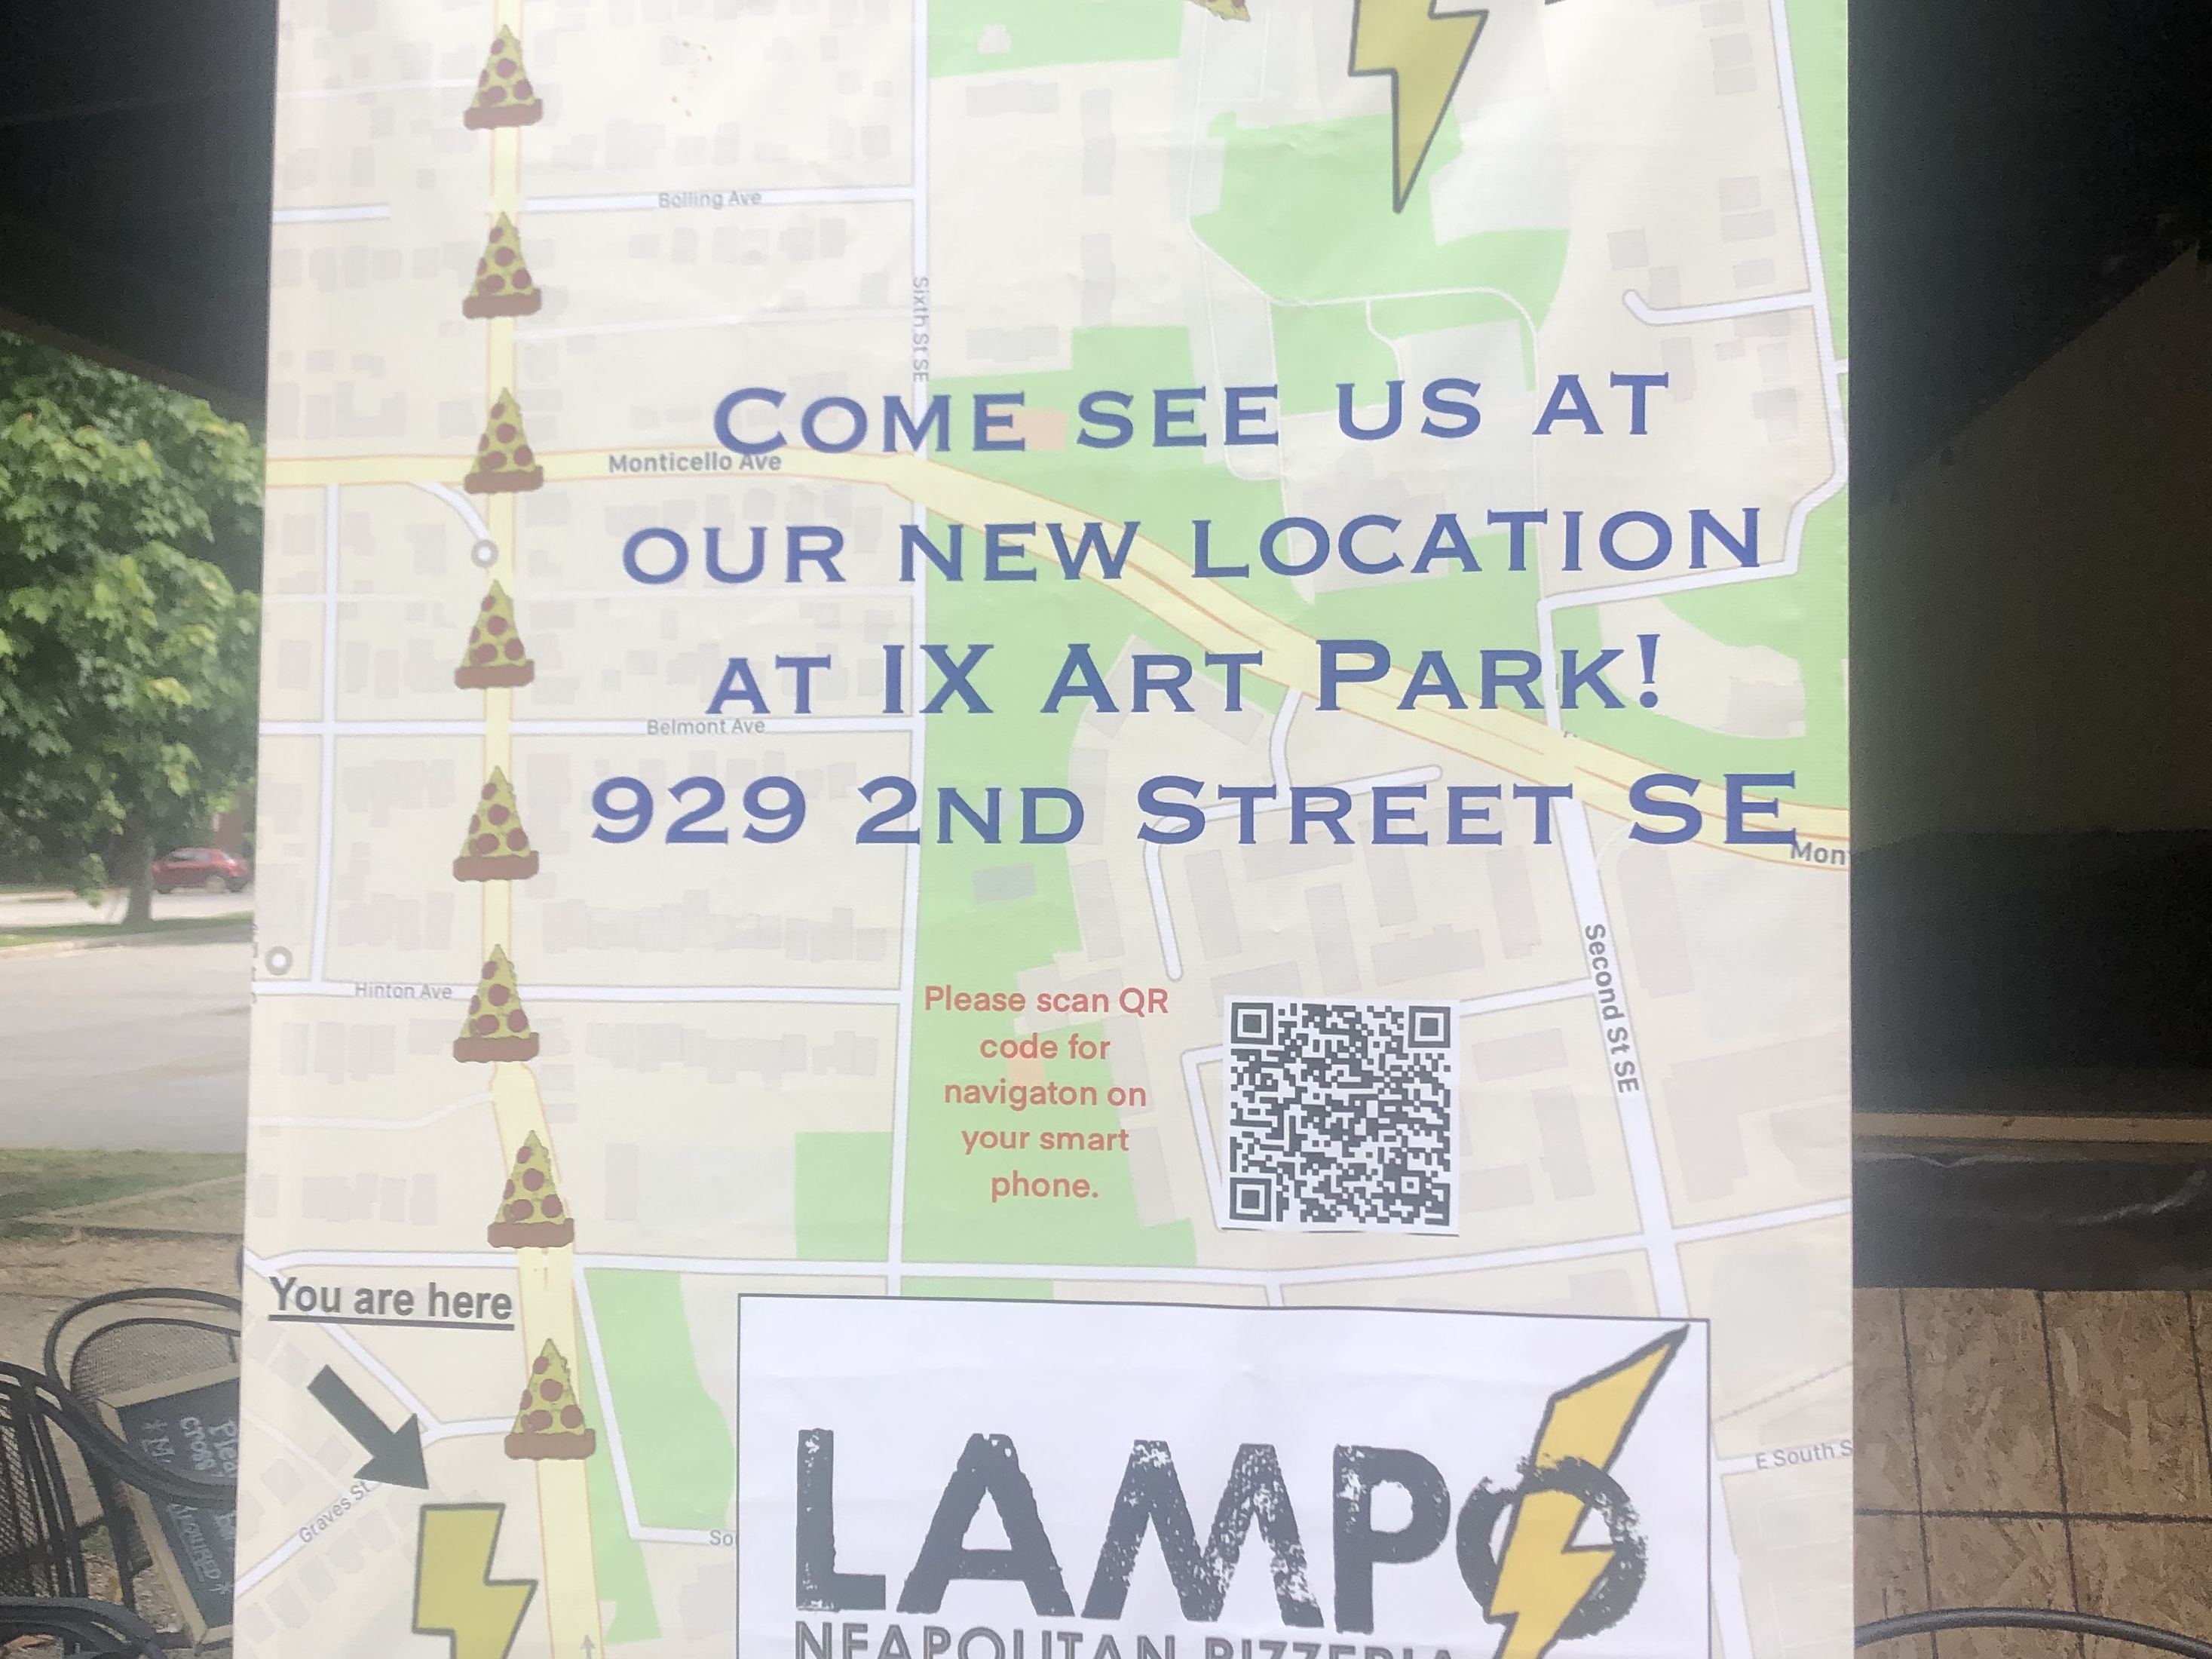 Lampo Neapolitan Pizzeria moved to IX Art Park